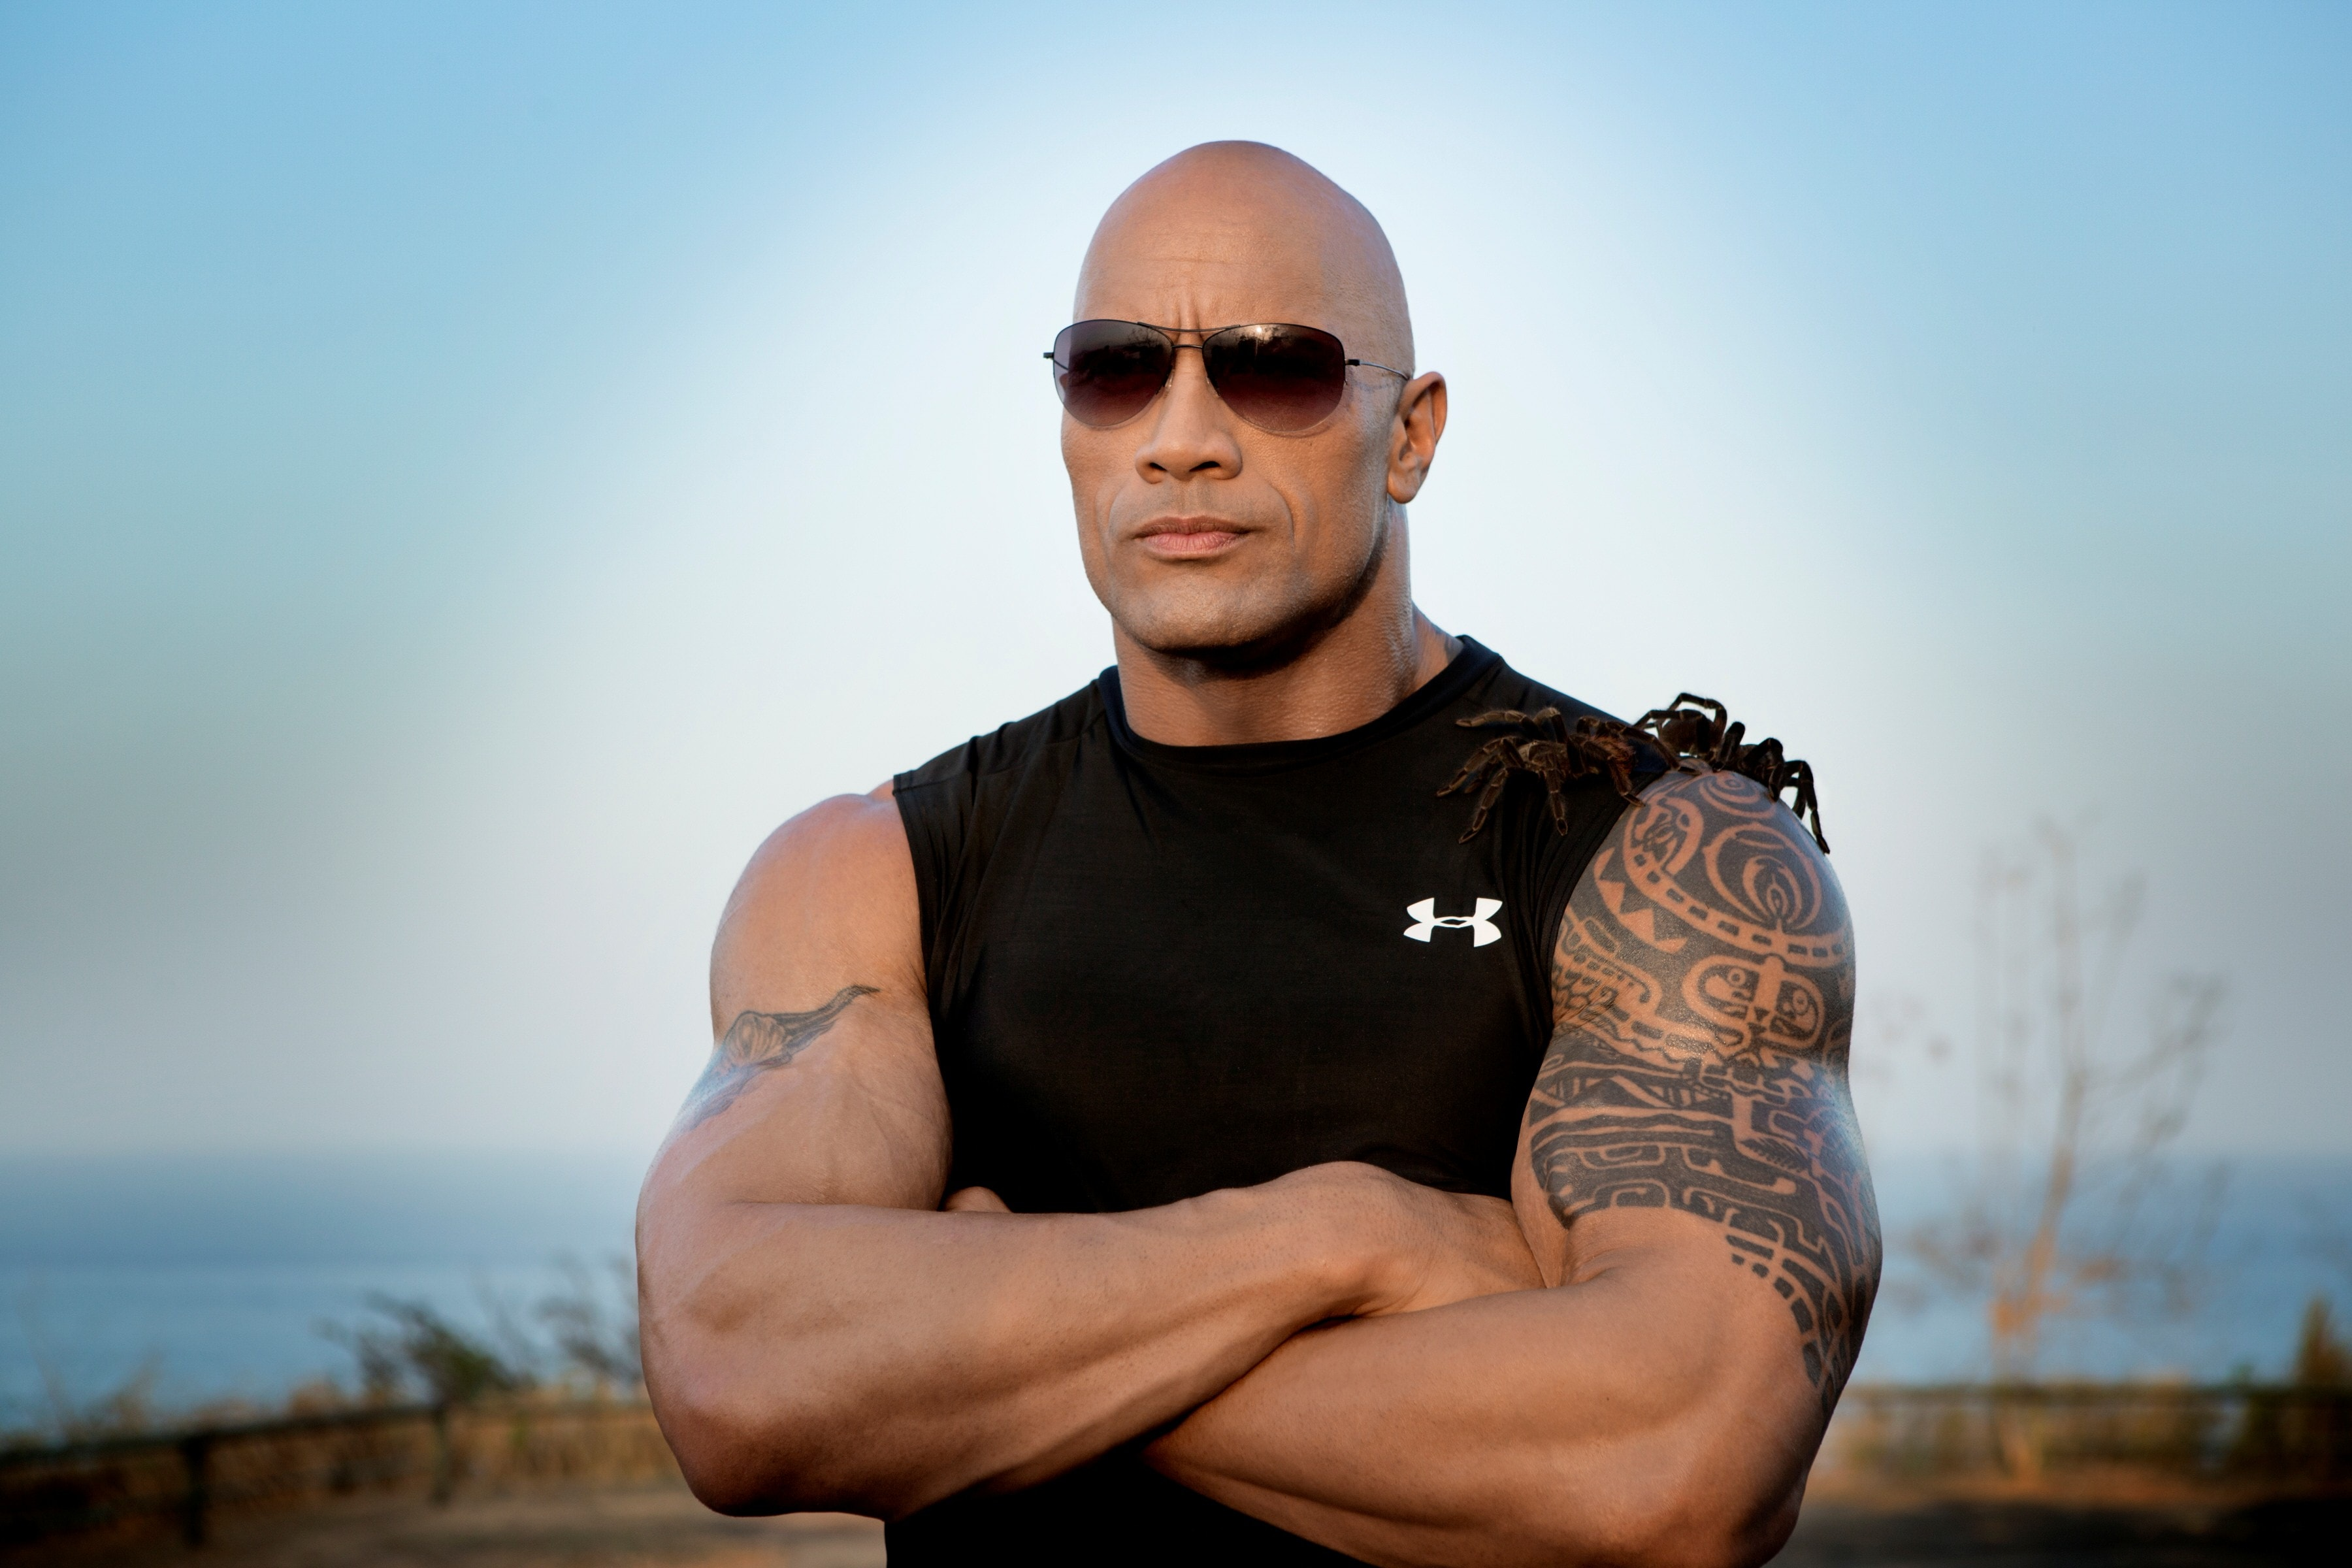 Dwayne Johnson Free